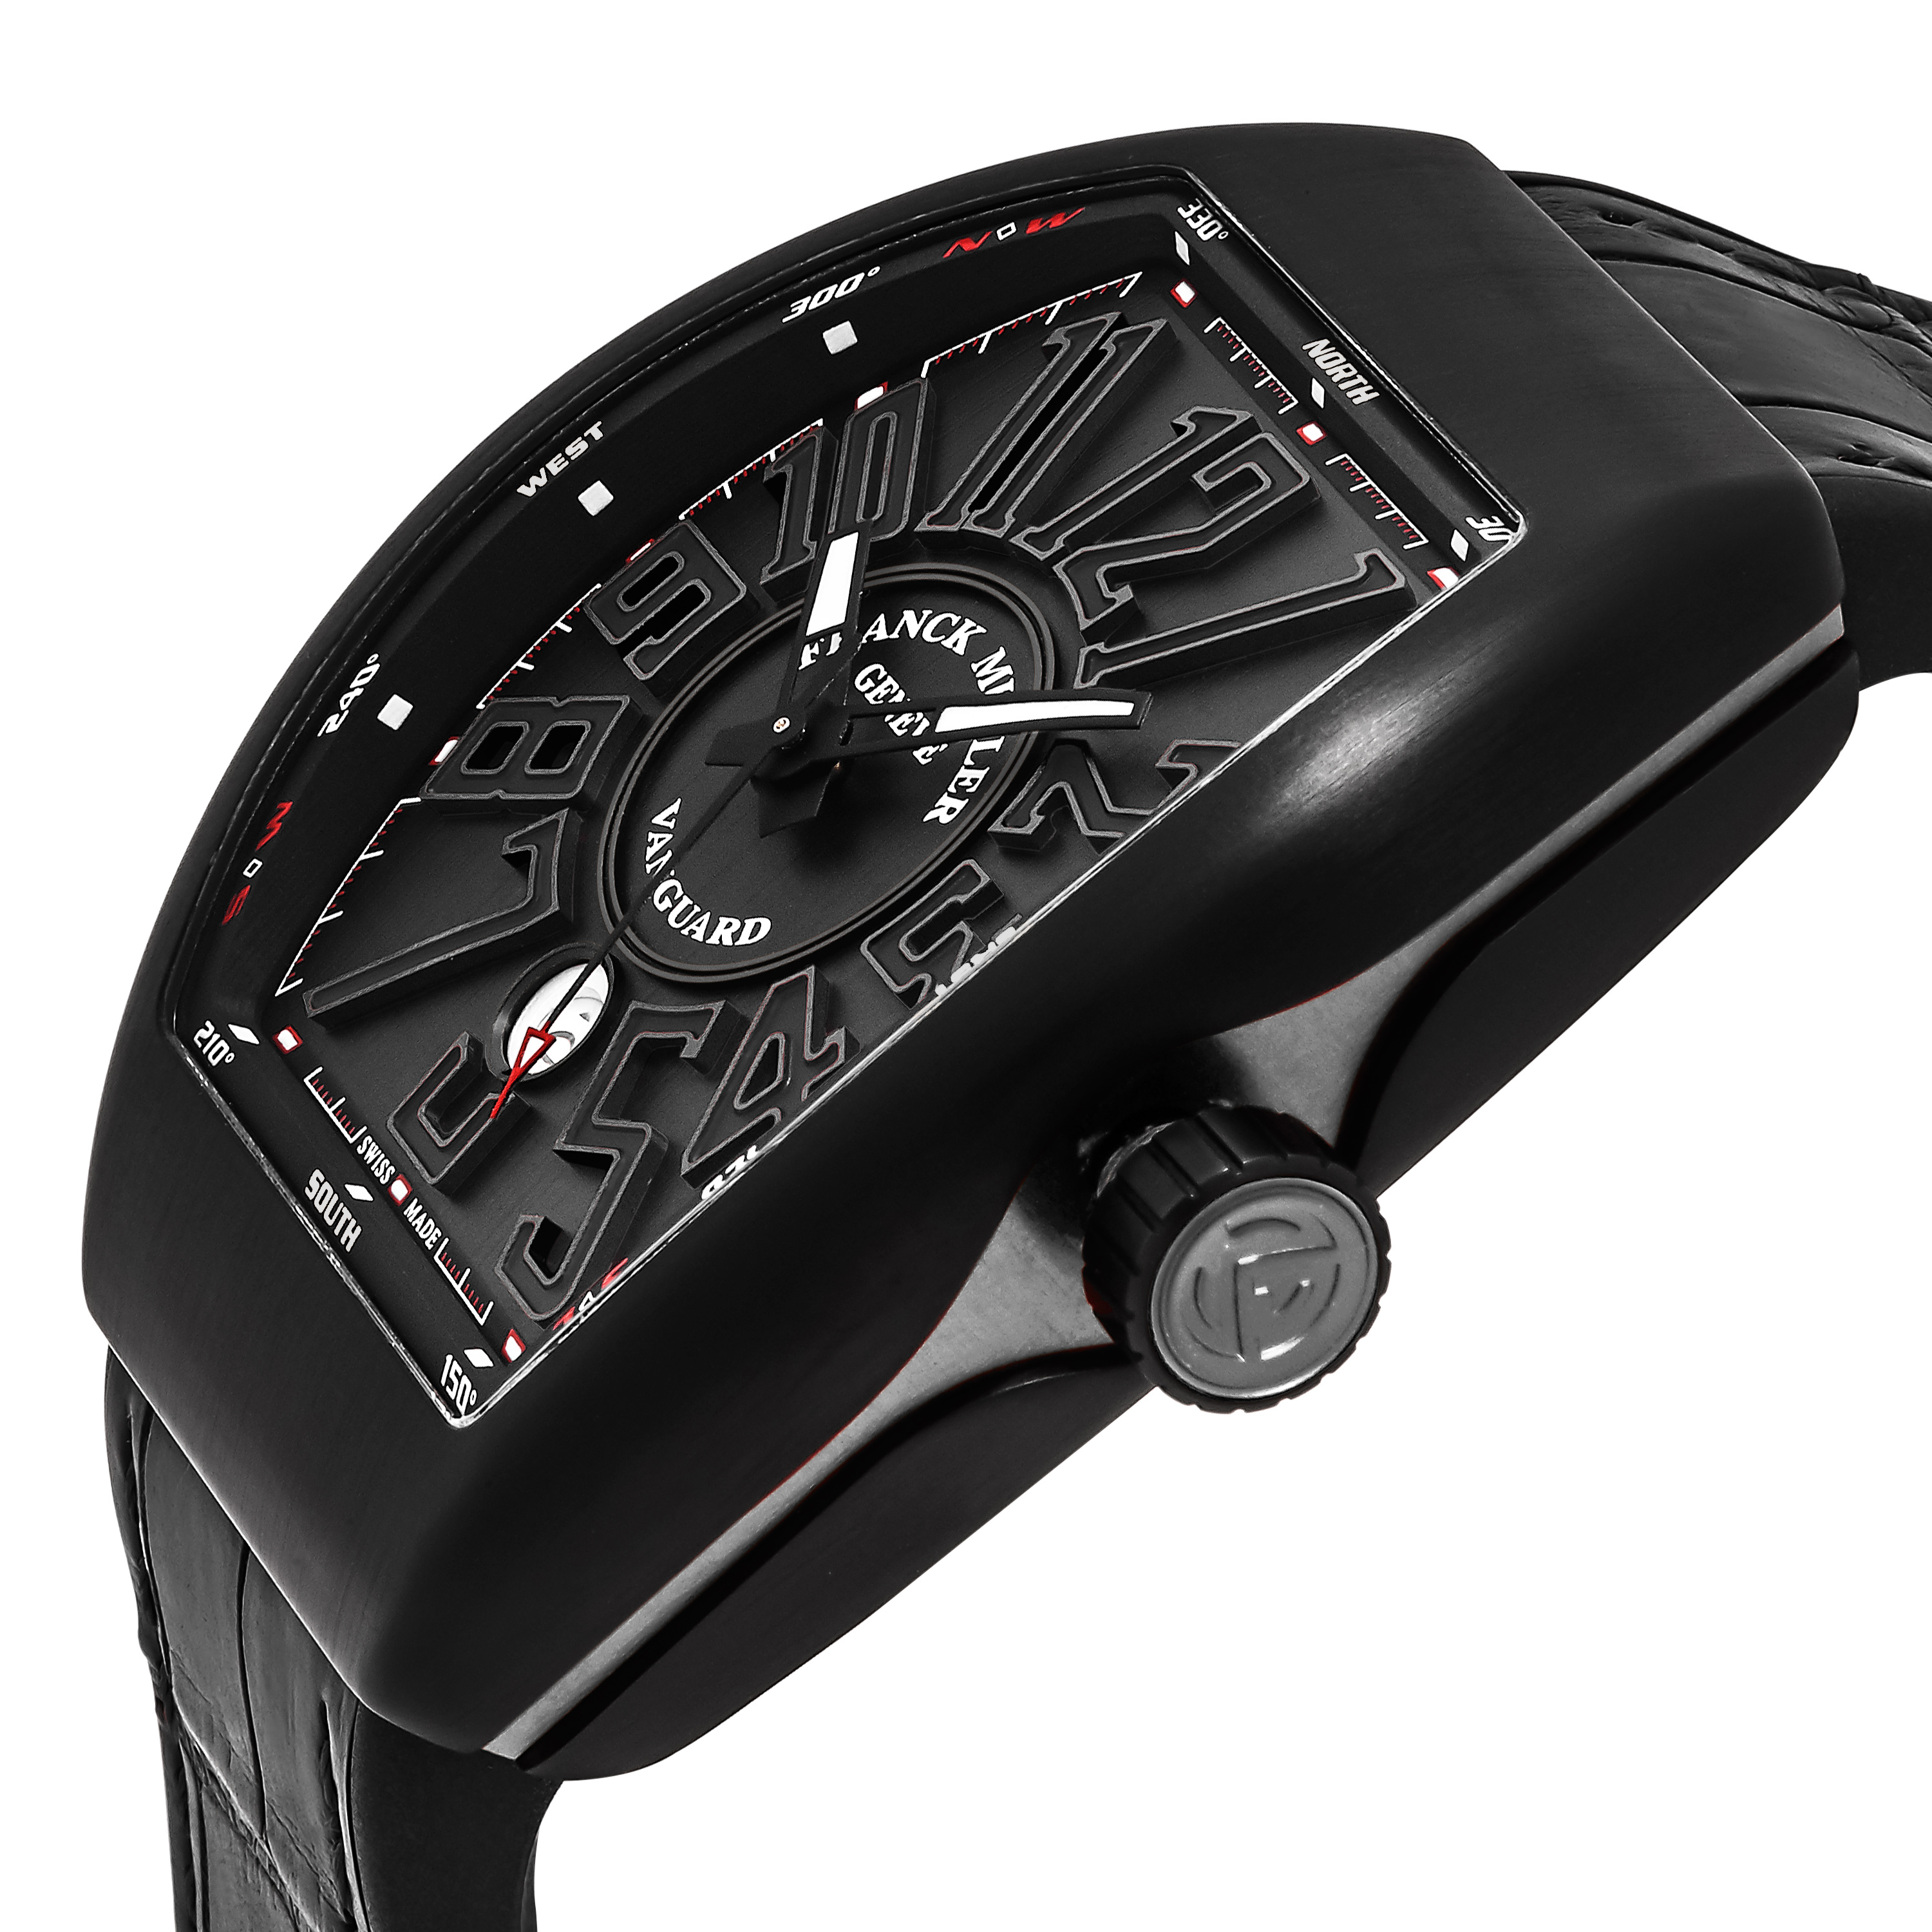 Franck Muller Vanguard Men's Watch Model V45SCDTTTNRBRTT Thumbnail 2